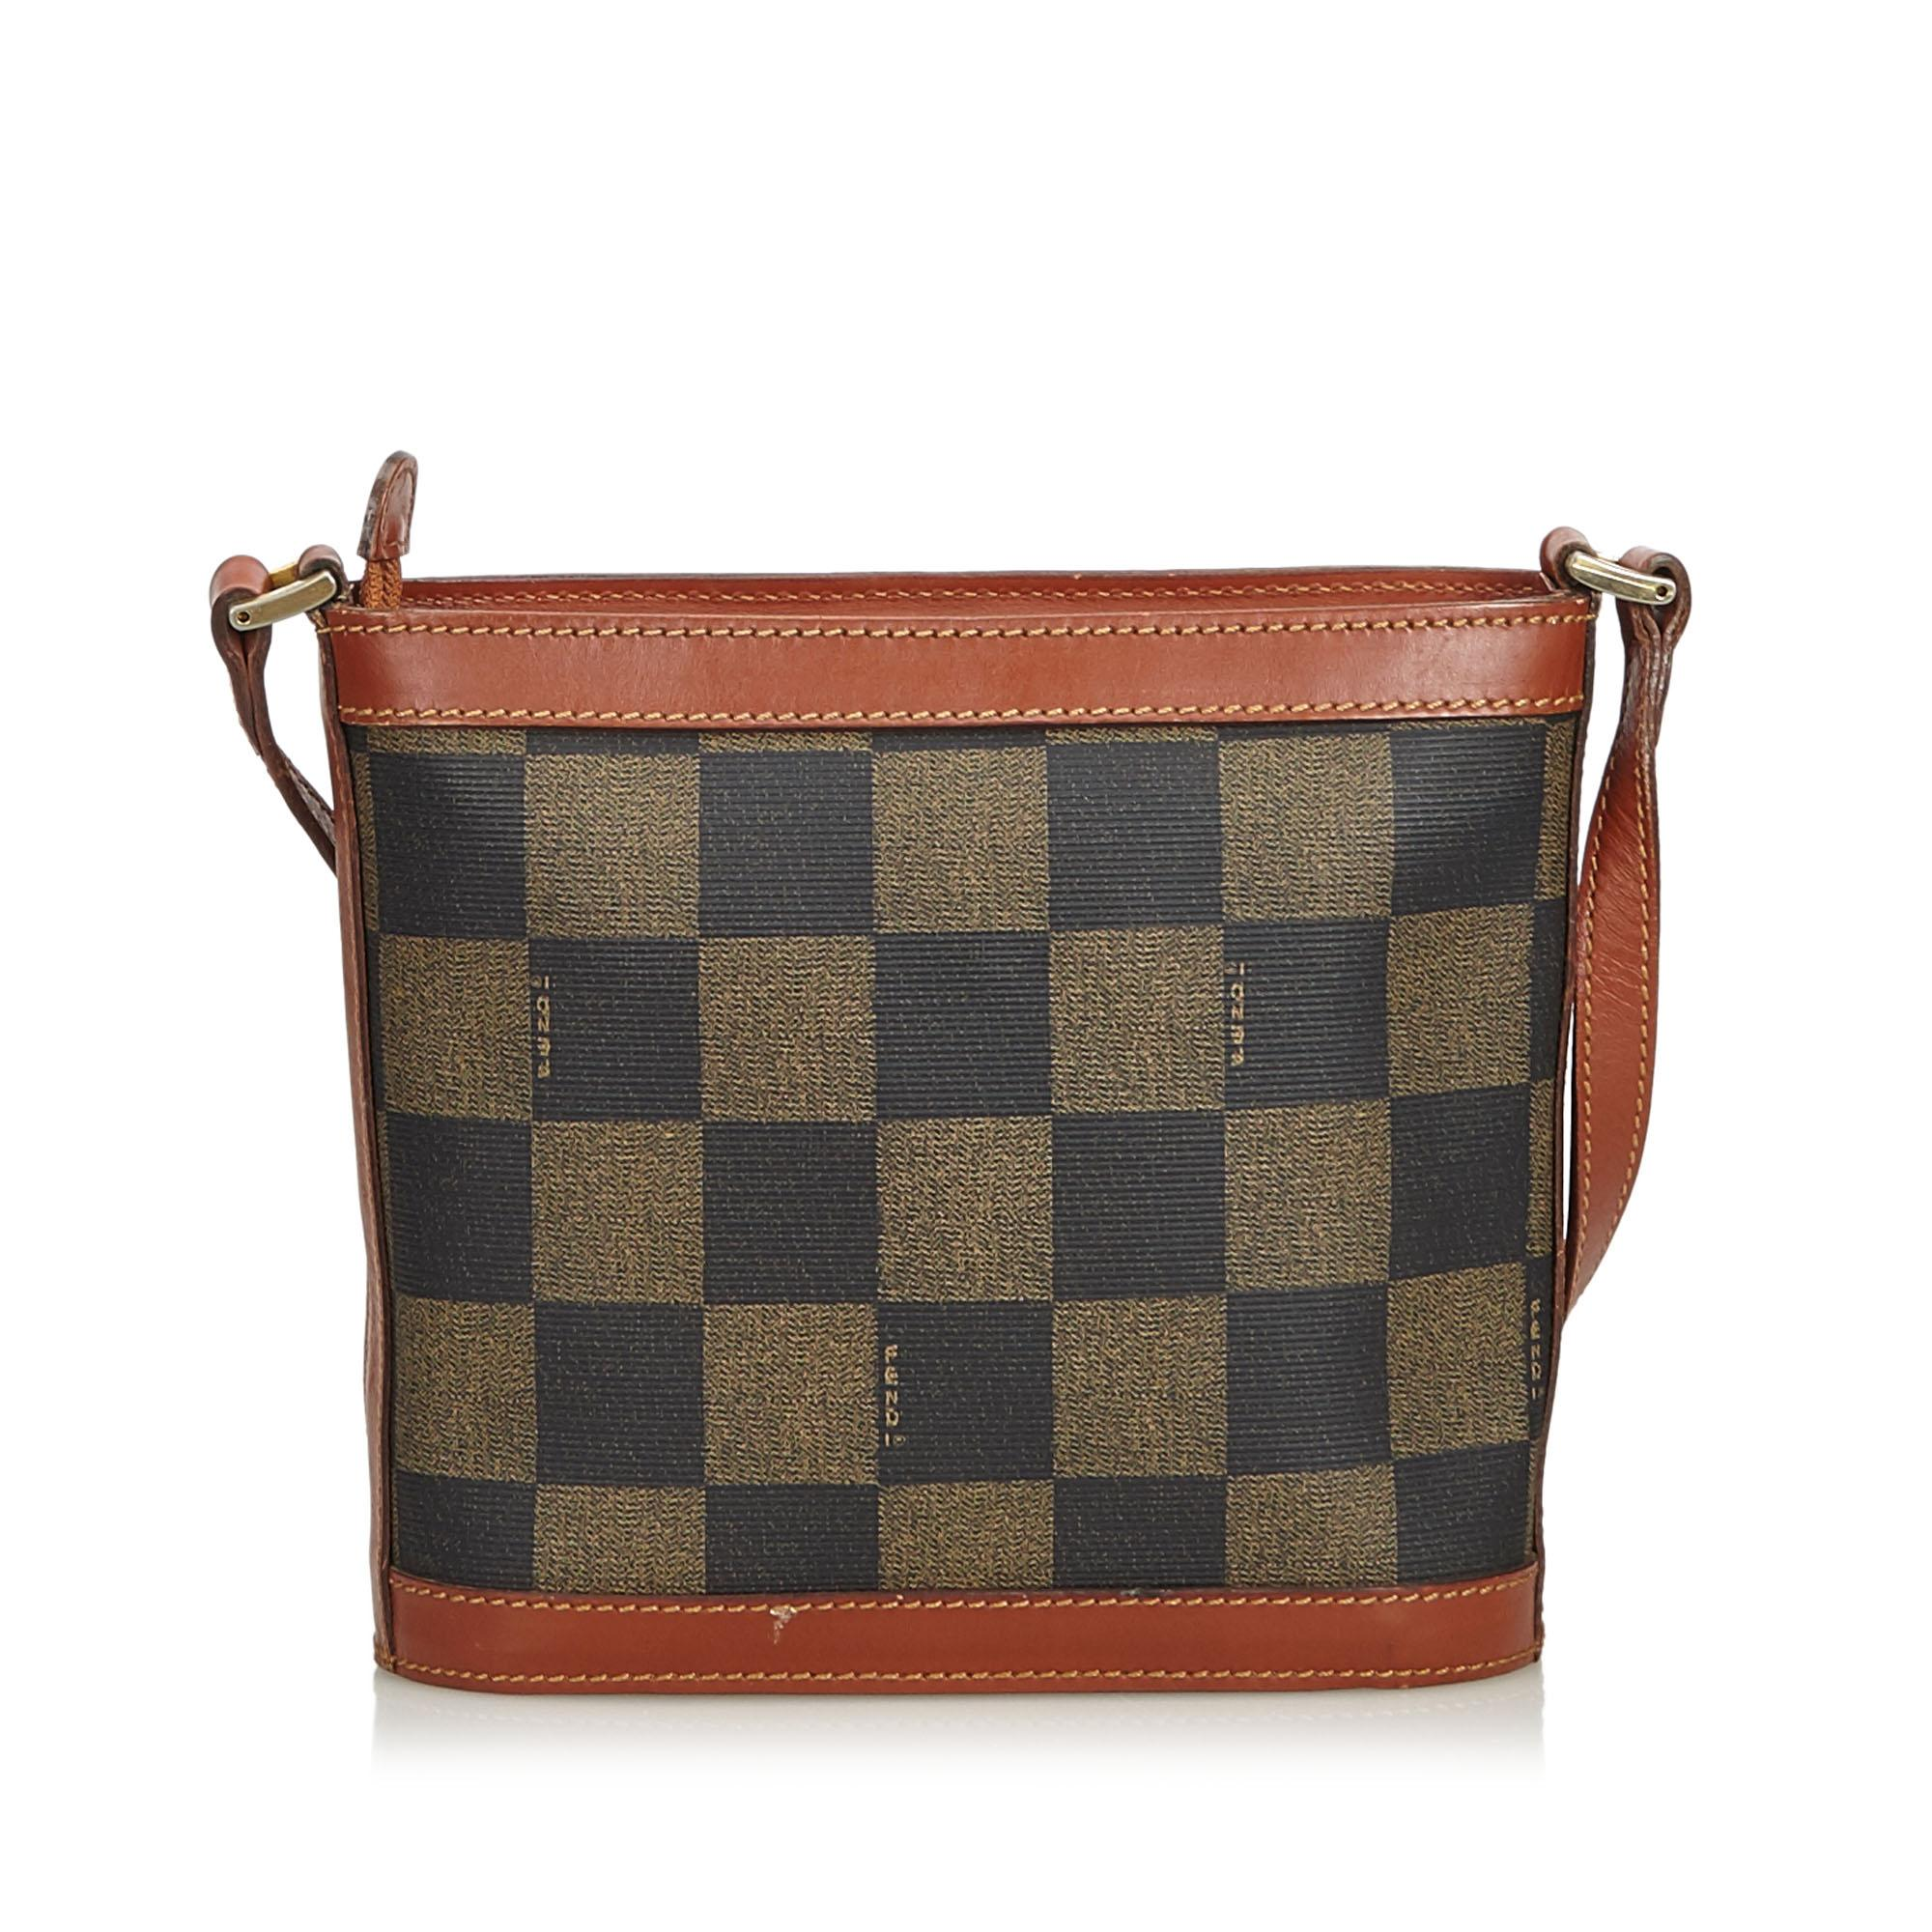 375ba23109 Fendi Brown Pequin Crossbody Bag at 1stdibs